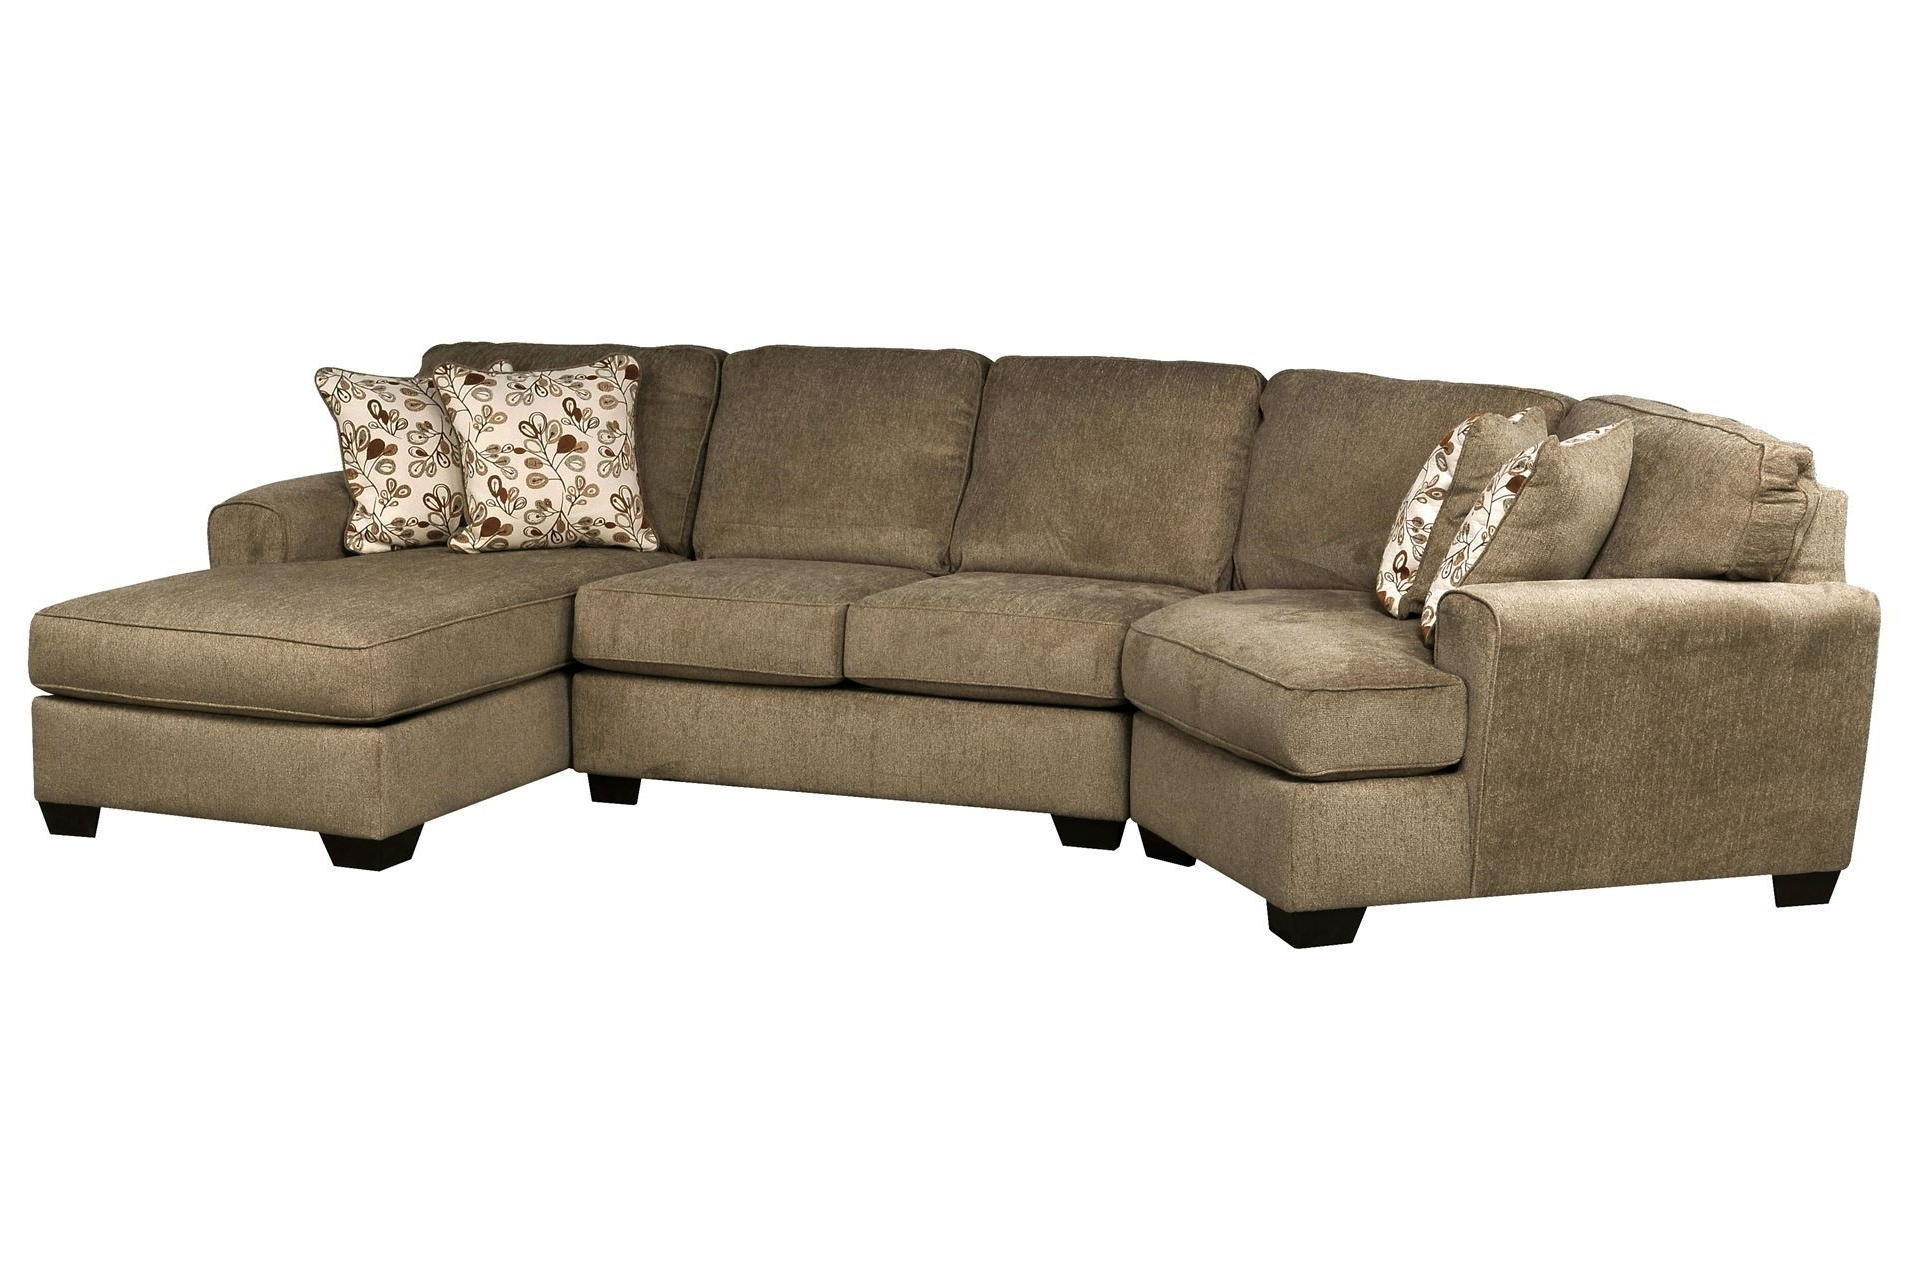 Sectional Sofas With Cuddler Chaise Inside Most Recent Don't Love The Color, But The Shape Is Great! (View 7 of 15)